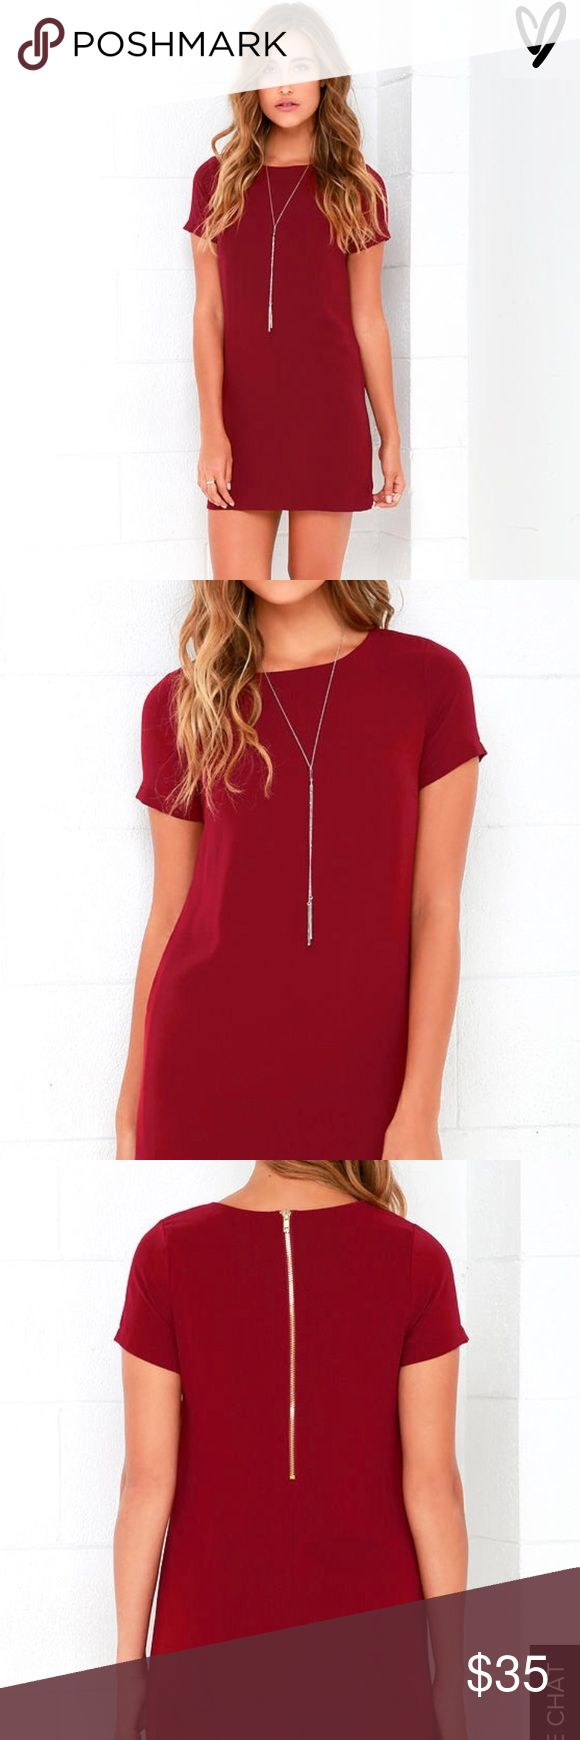 Like New Chic Wine Red Shift Dress Exposed gold zipper at back. Shift silhouette falls into a flirty, leg-baring length :) Lulus Dresses Mini